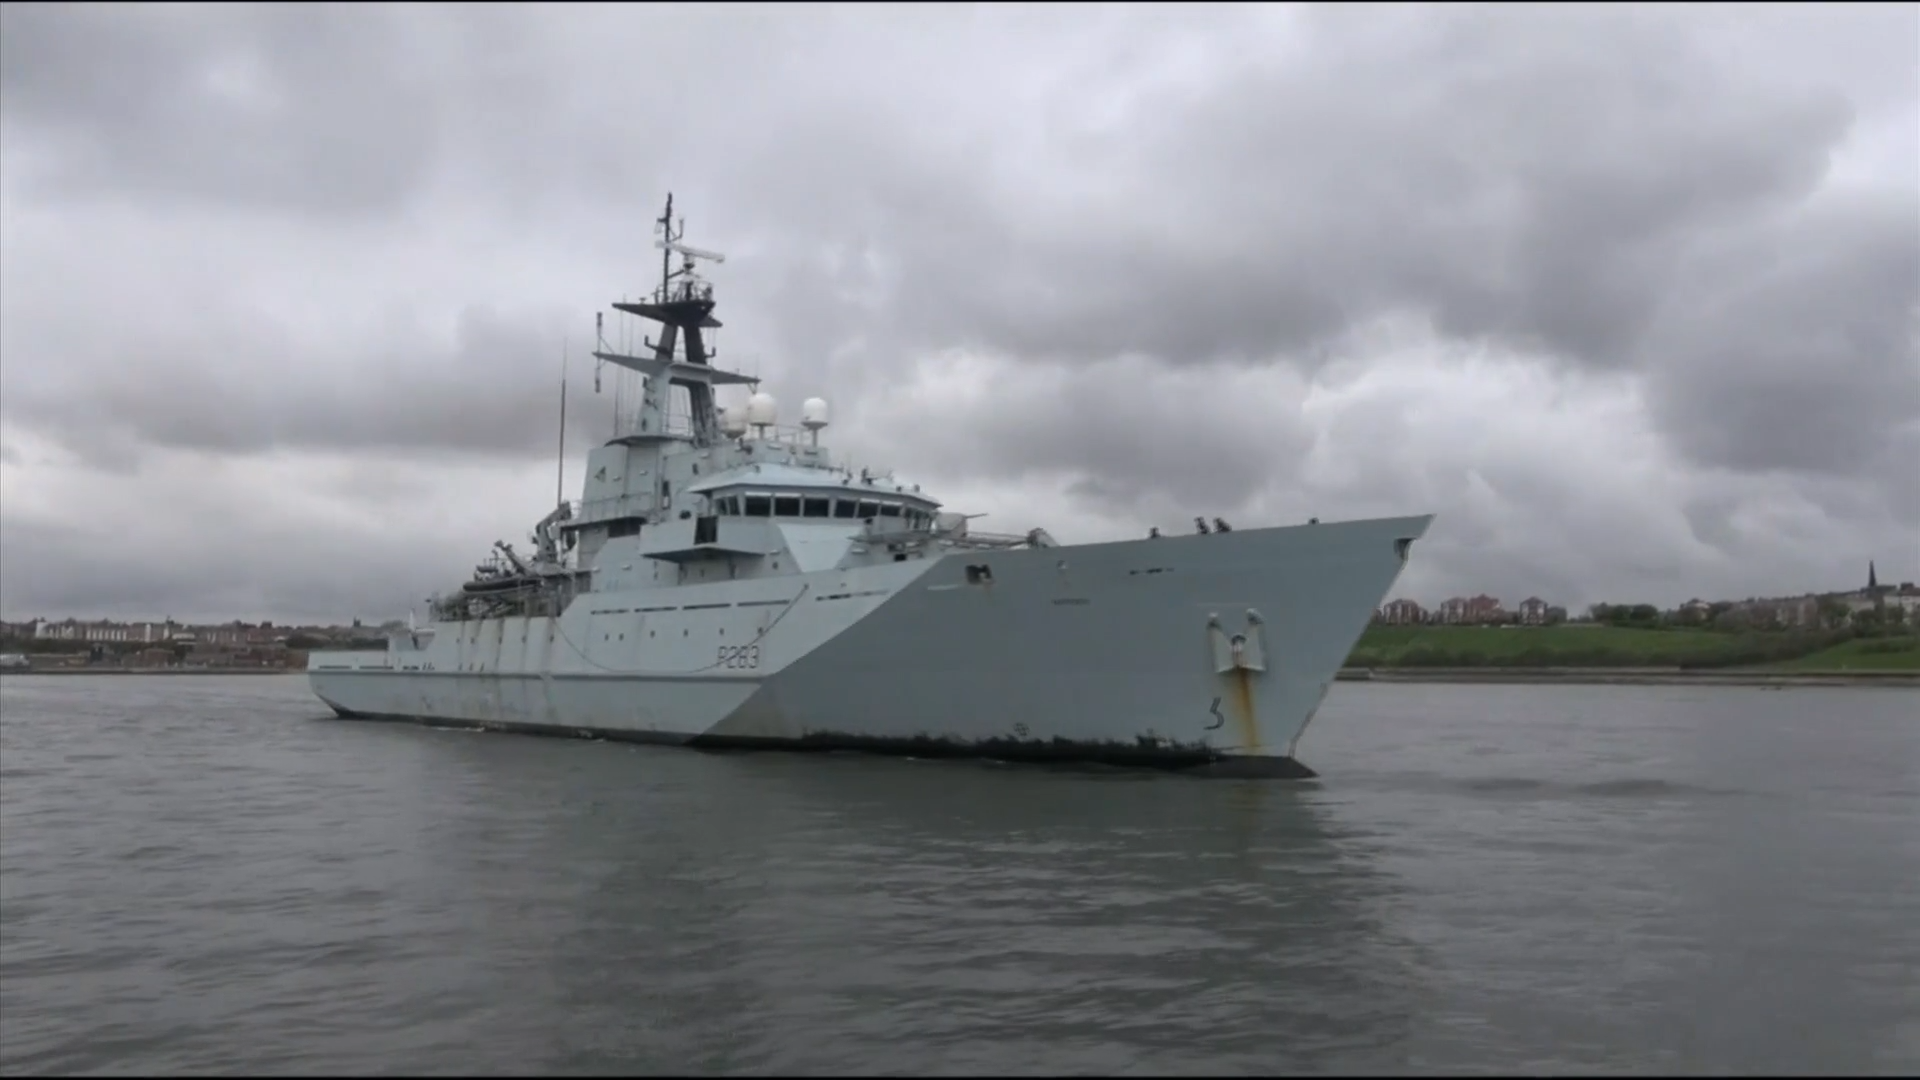 Royal Navy gunboats on standby to protect British fishing waters after no-deal Brexit